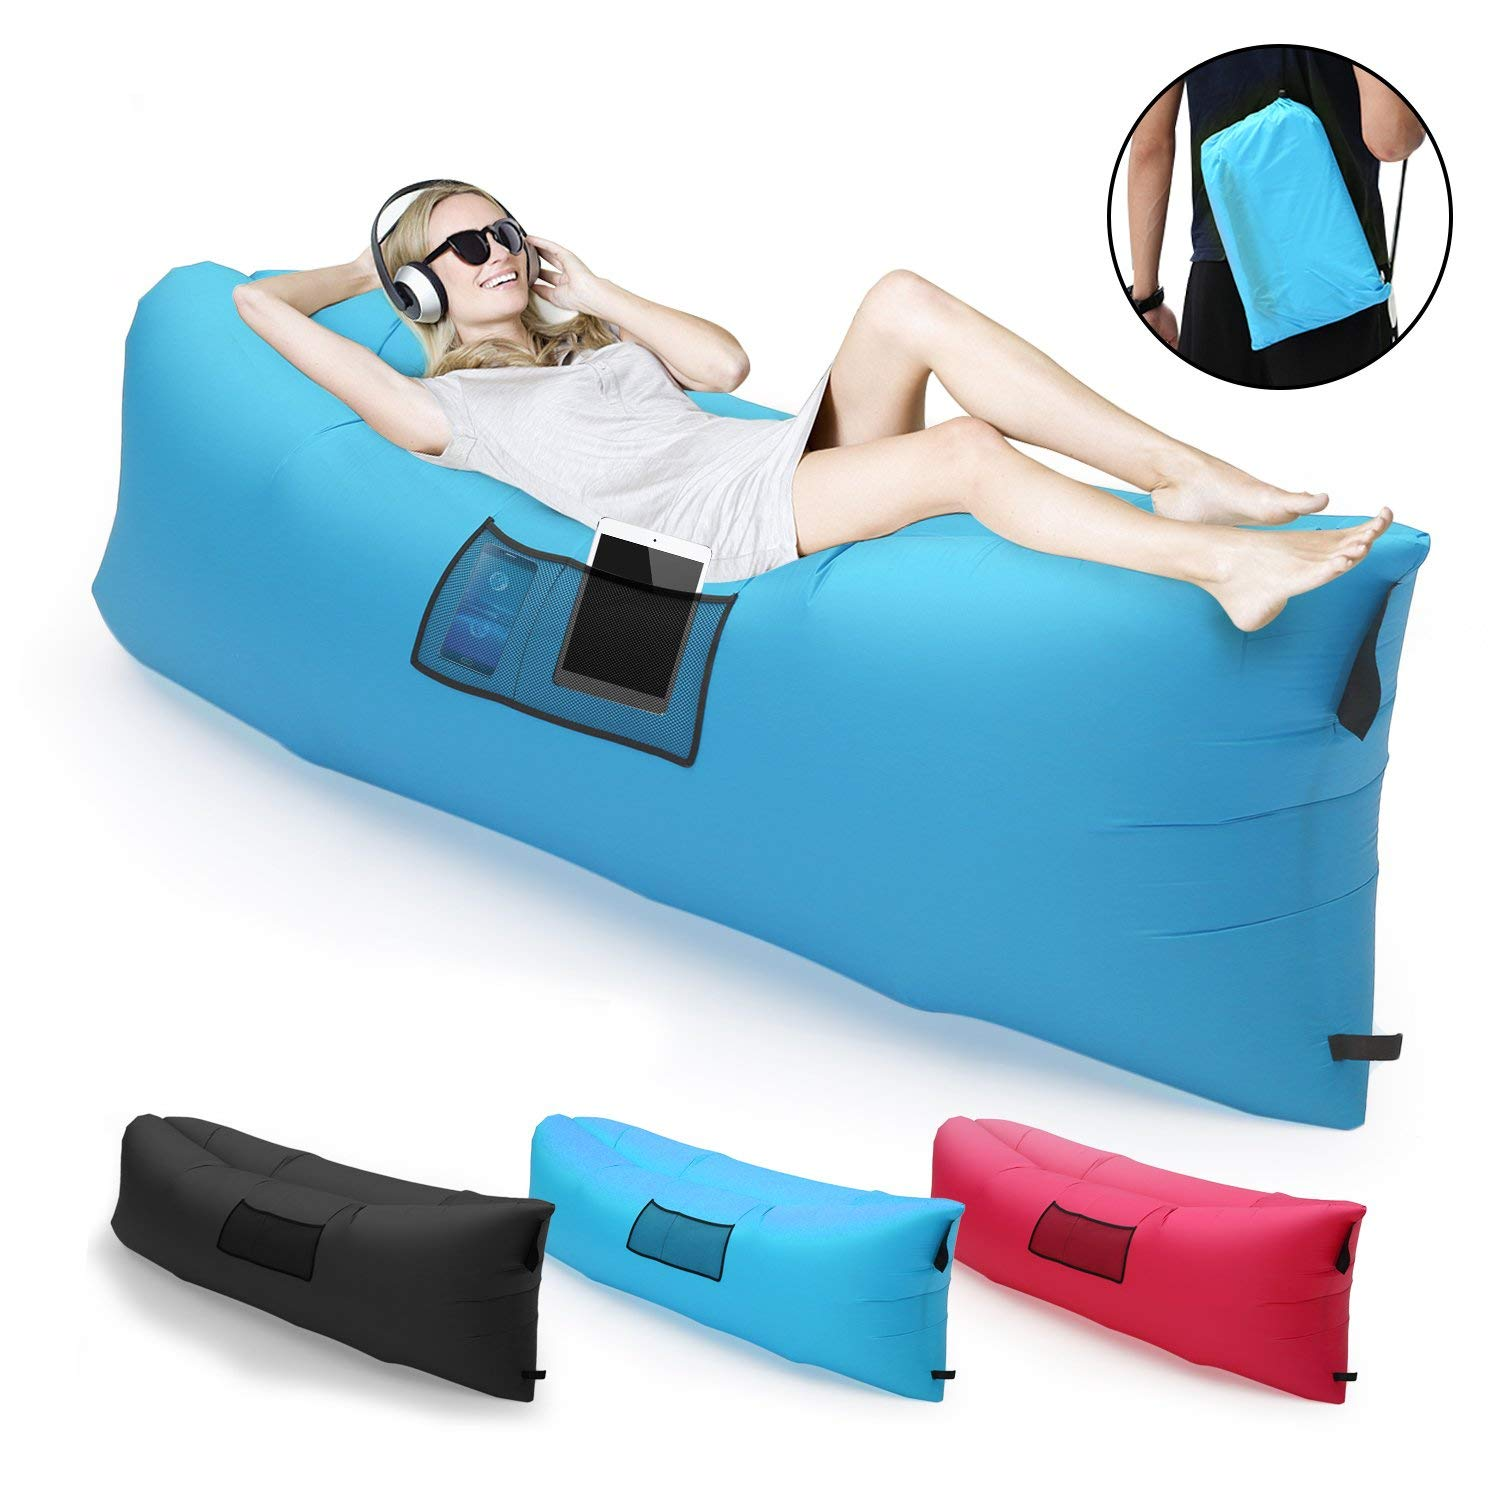 Kingpeony Inflatable Lounger Couch with Carry Bag